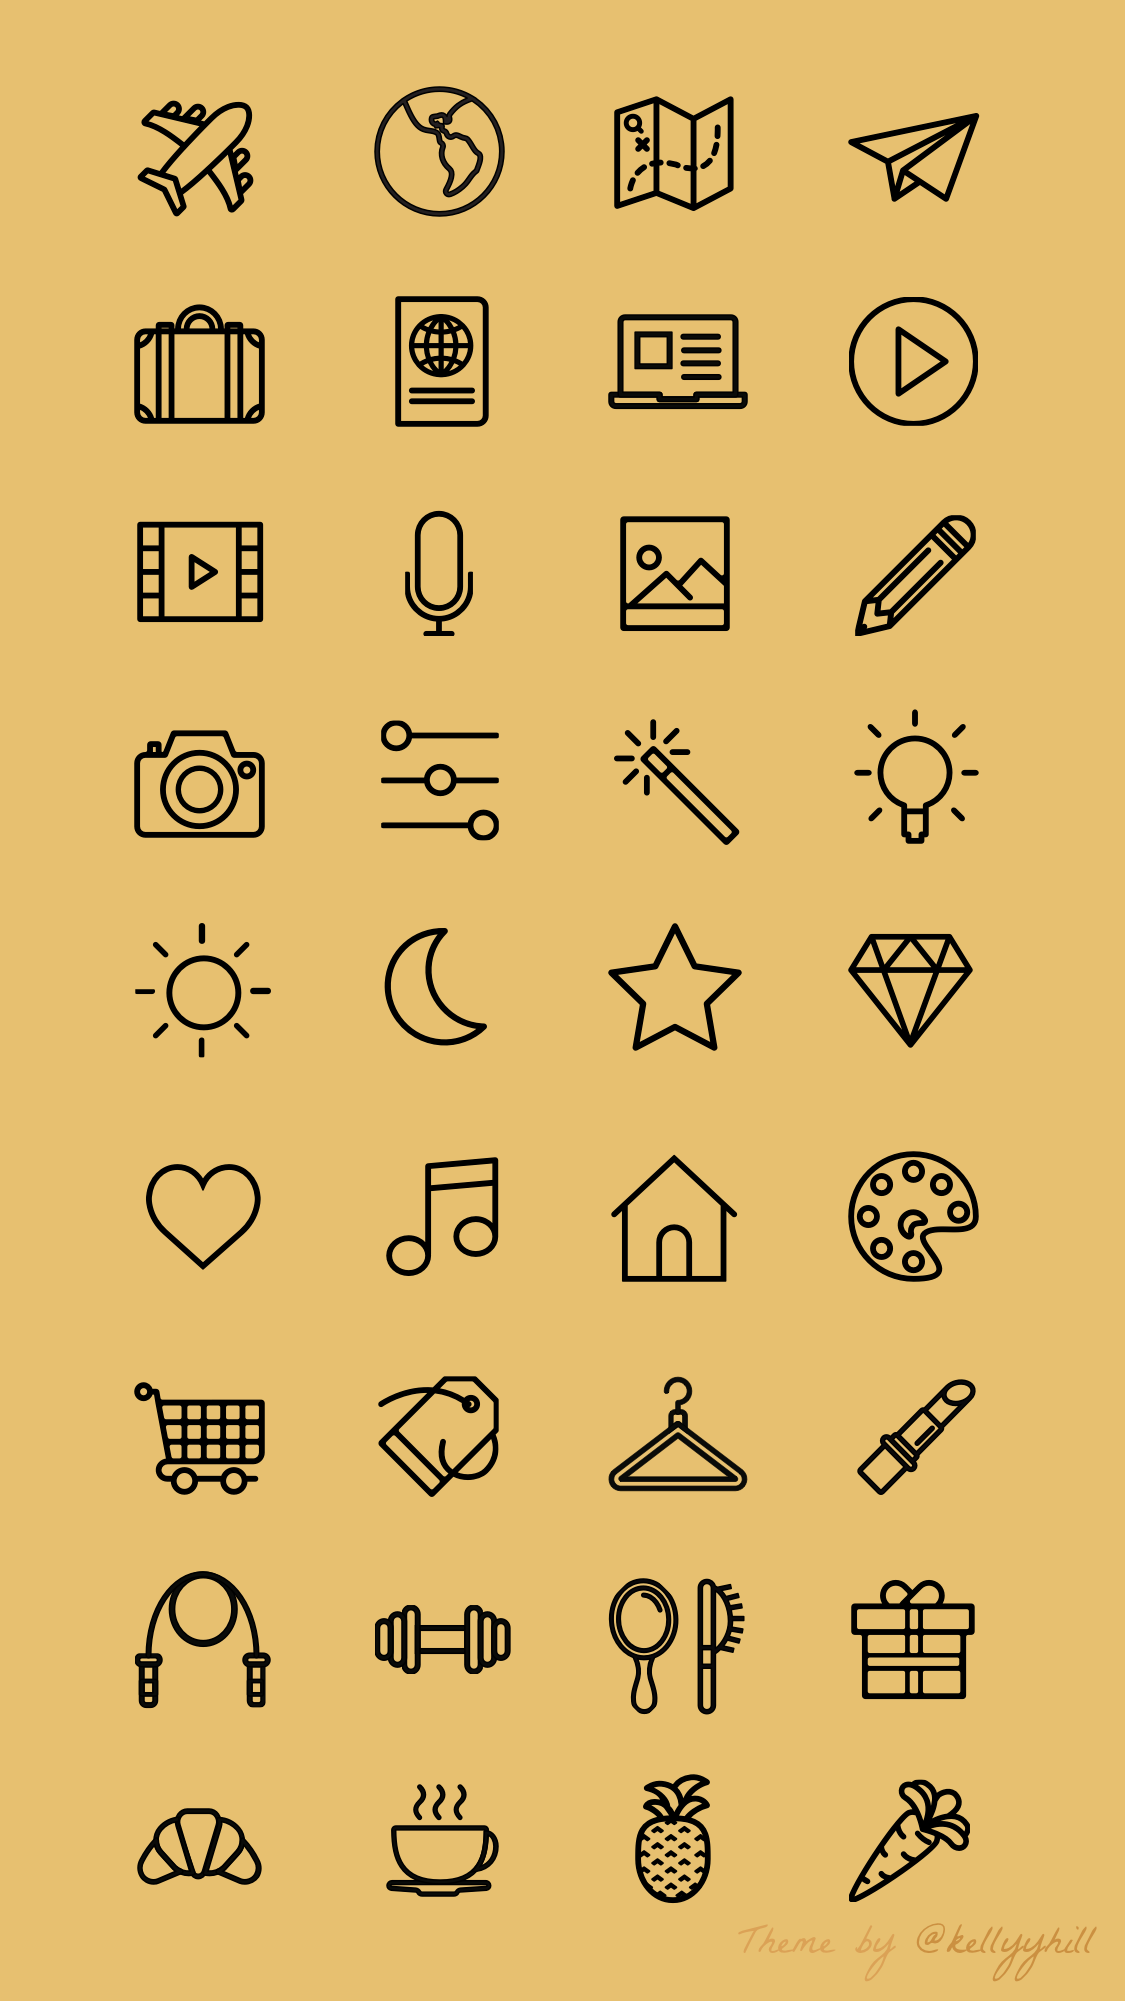 I will design an Instagram highlights icon